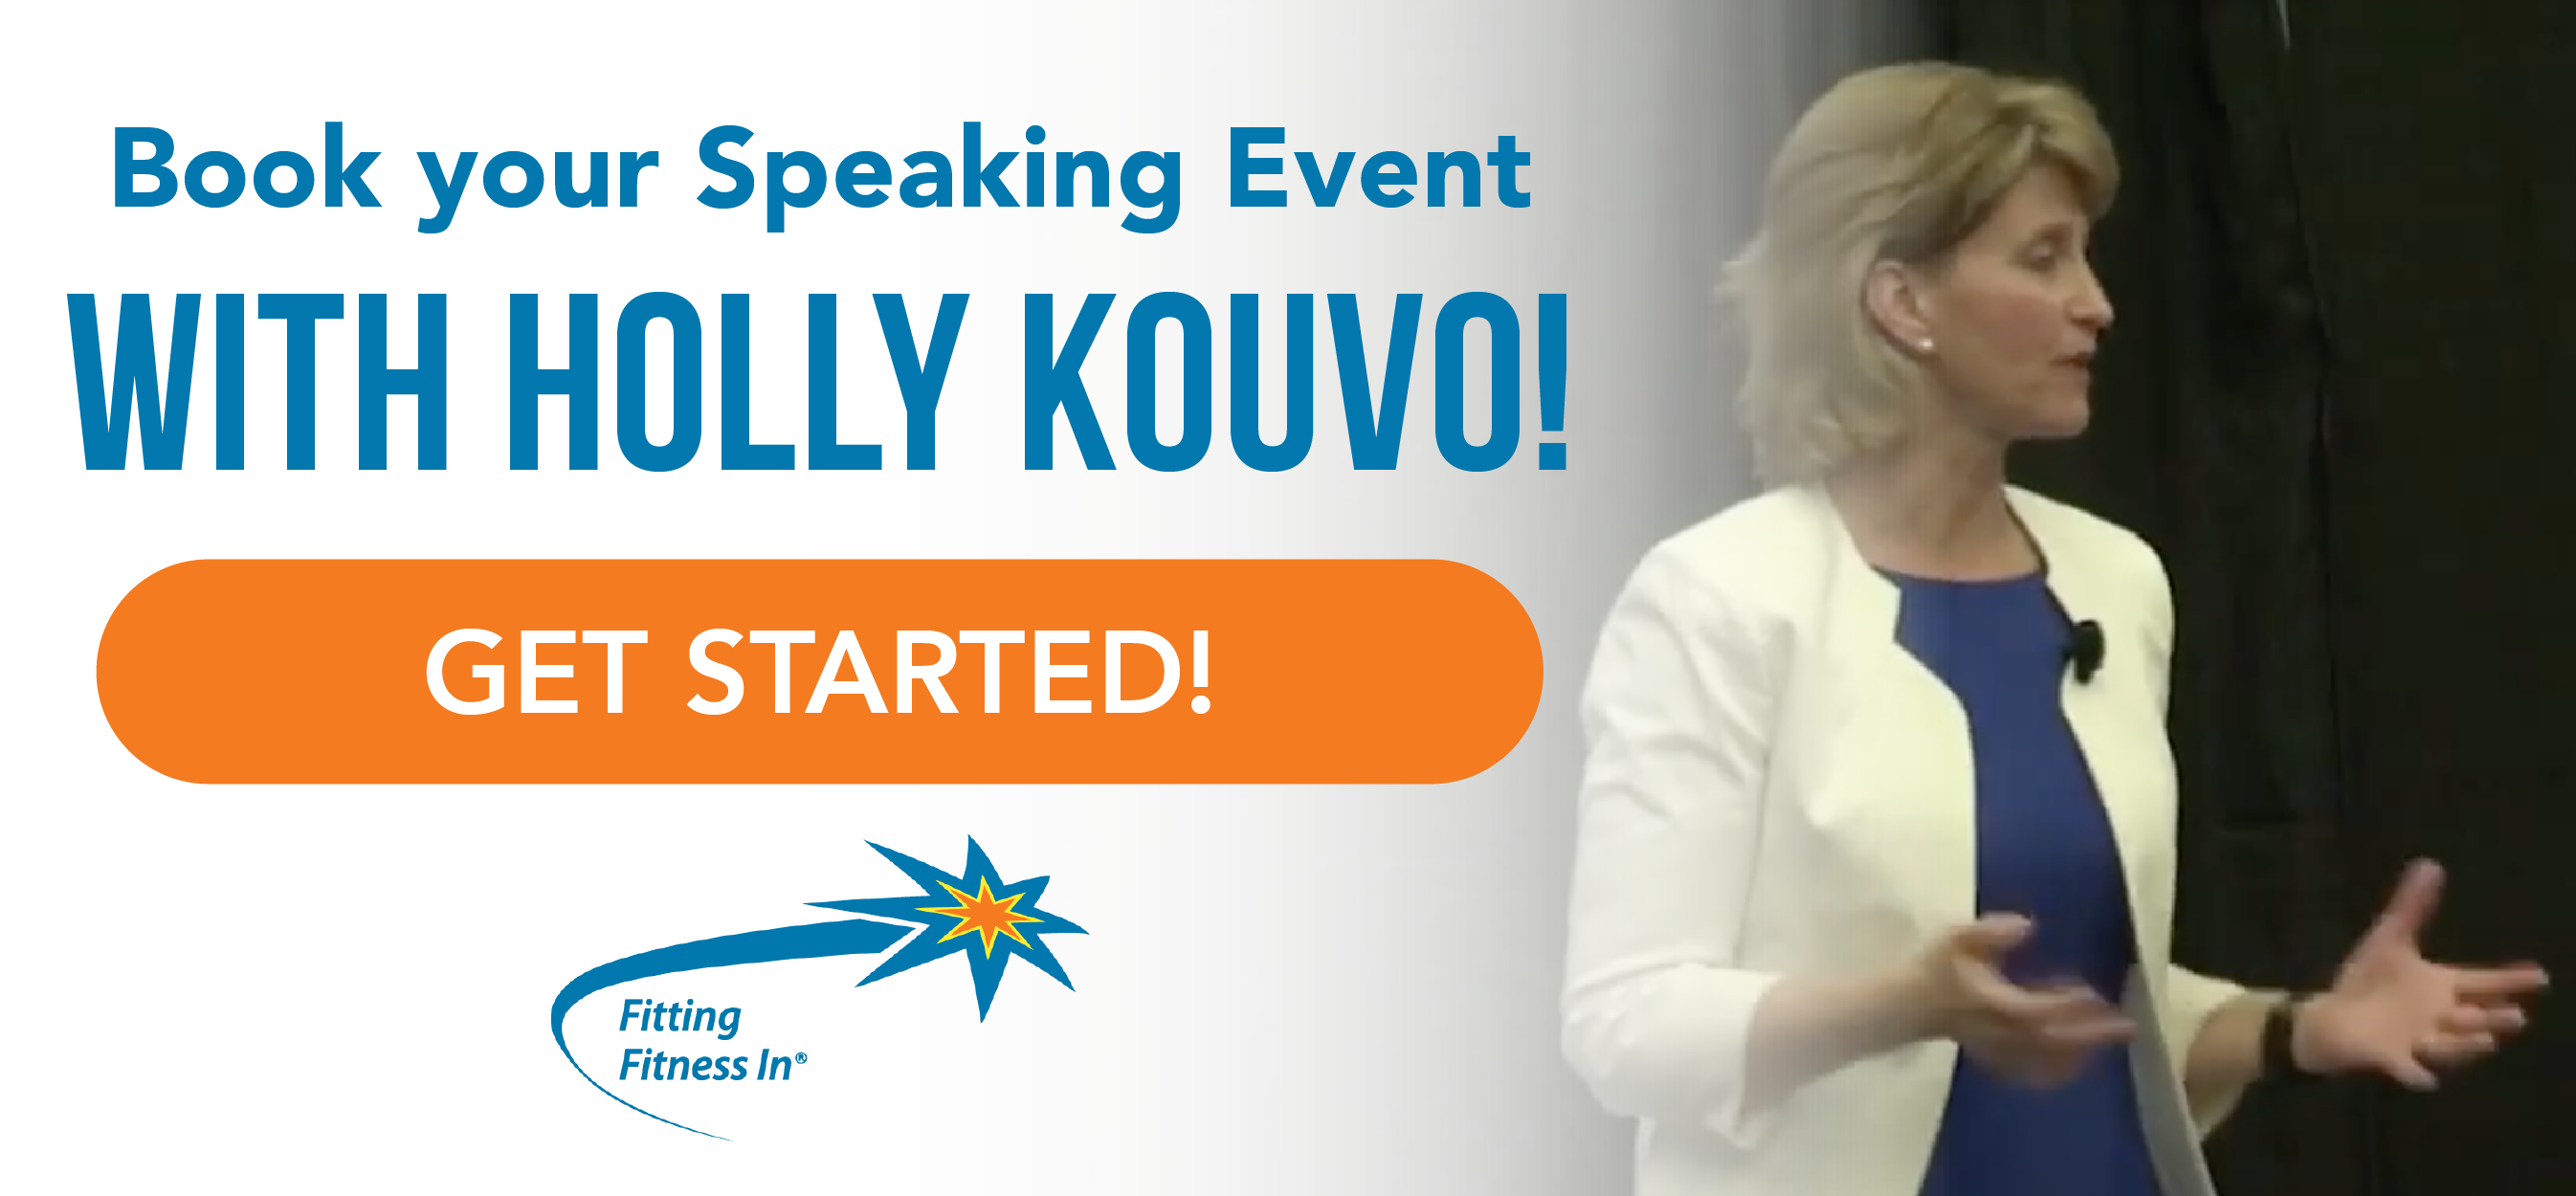 Book your Speaking Event with Holly Kouvo!